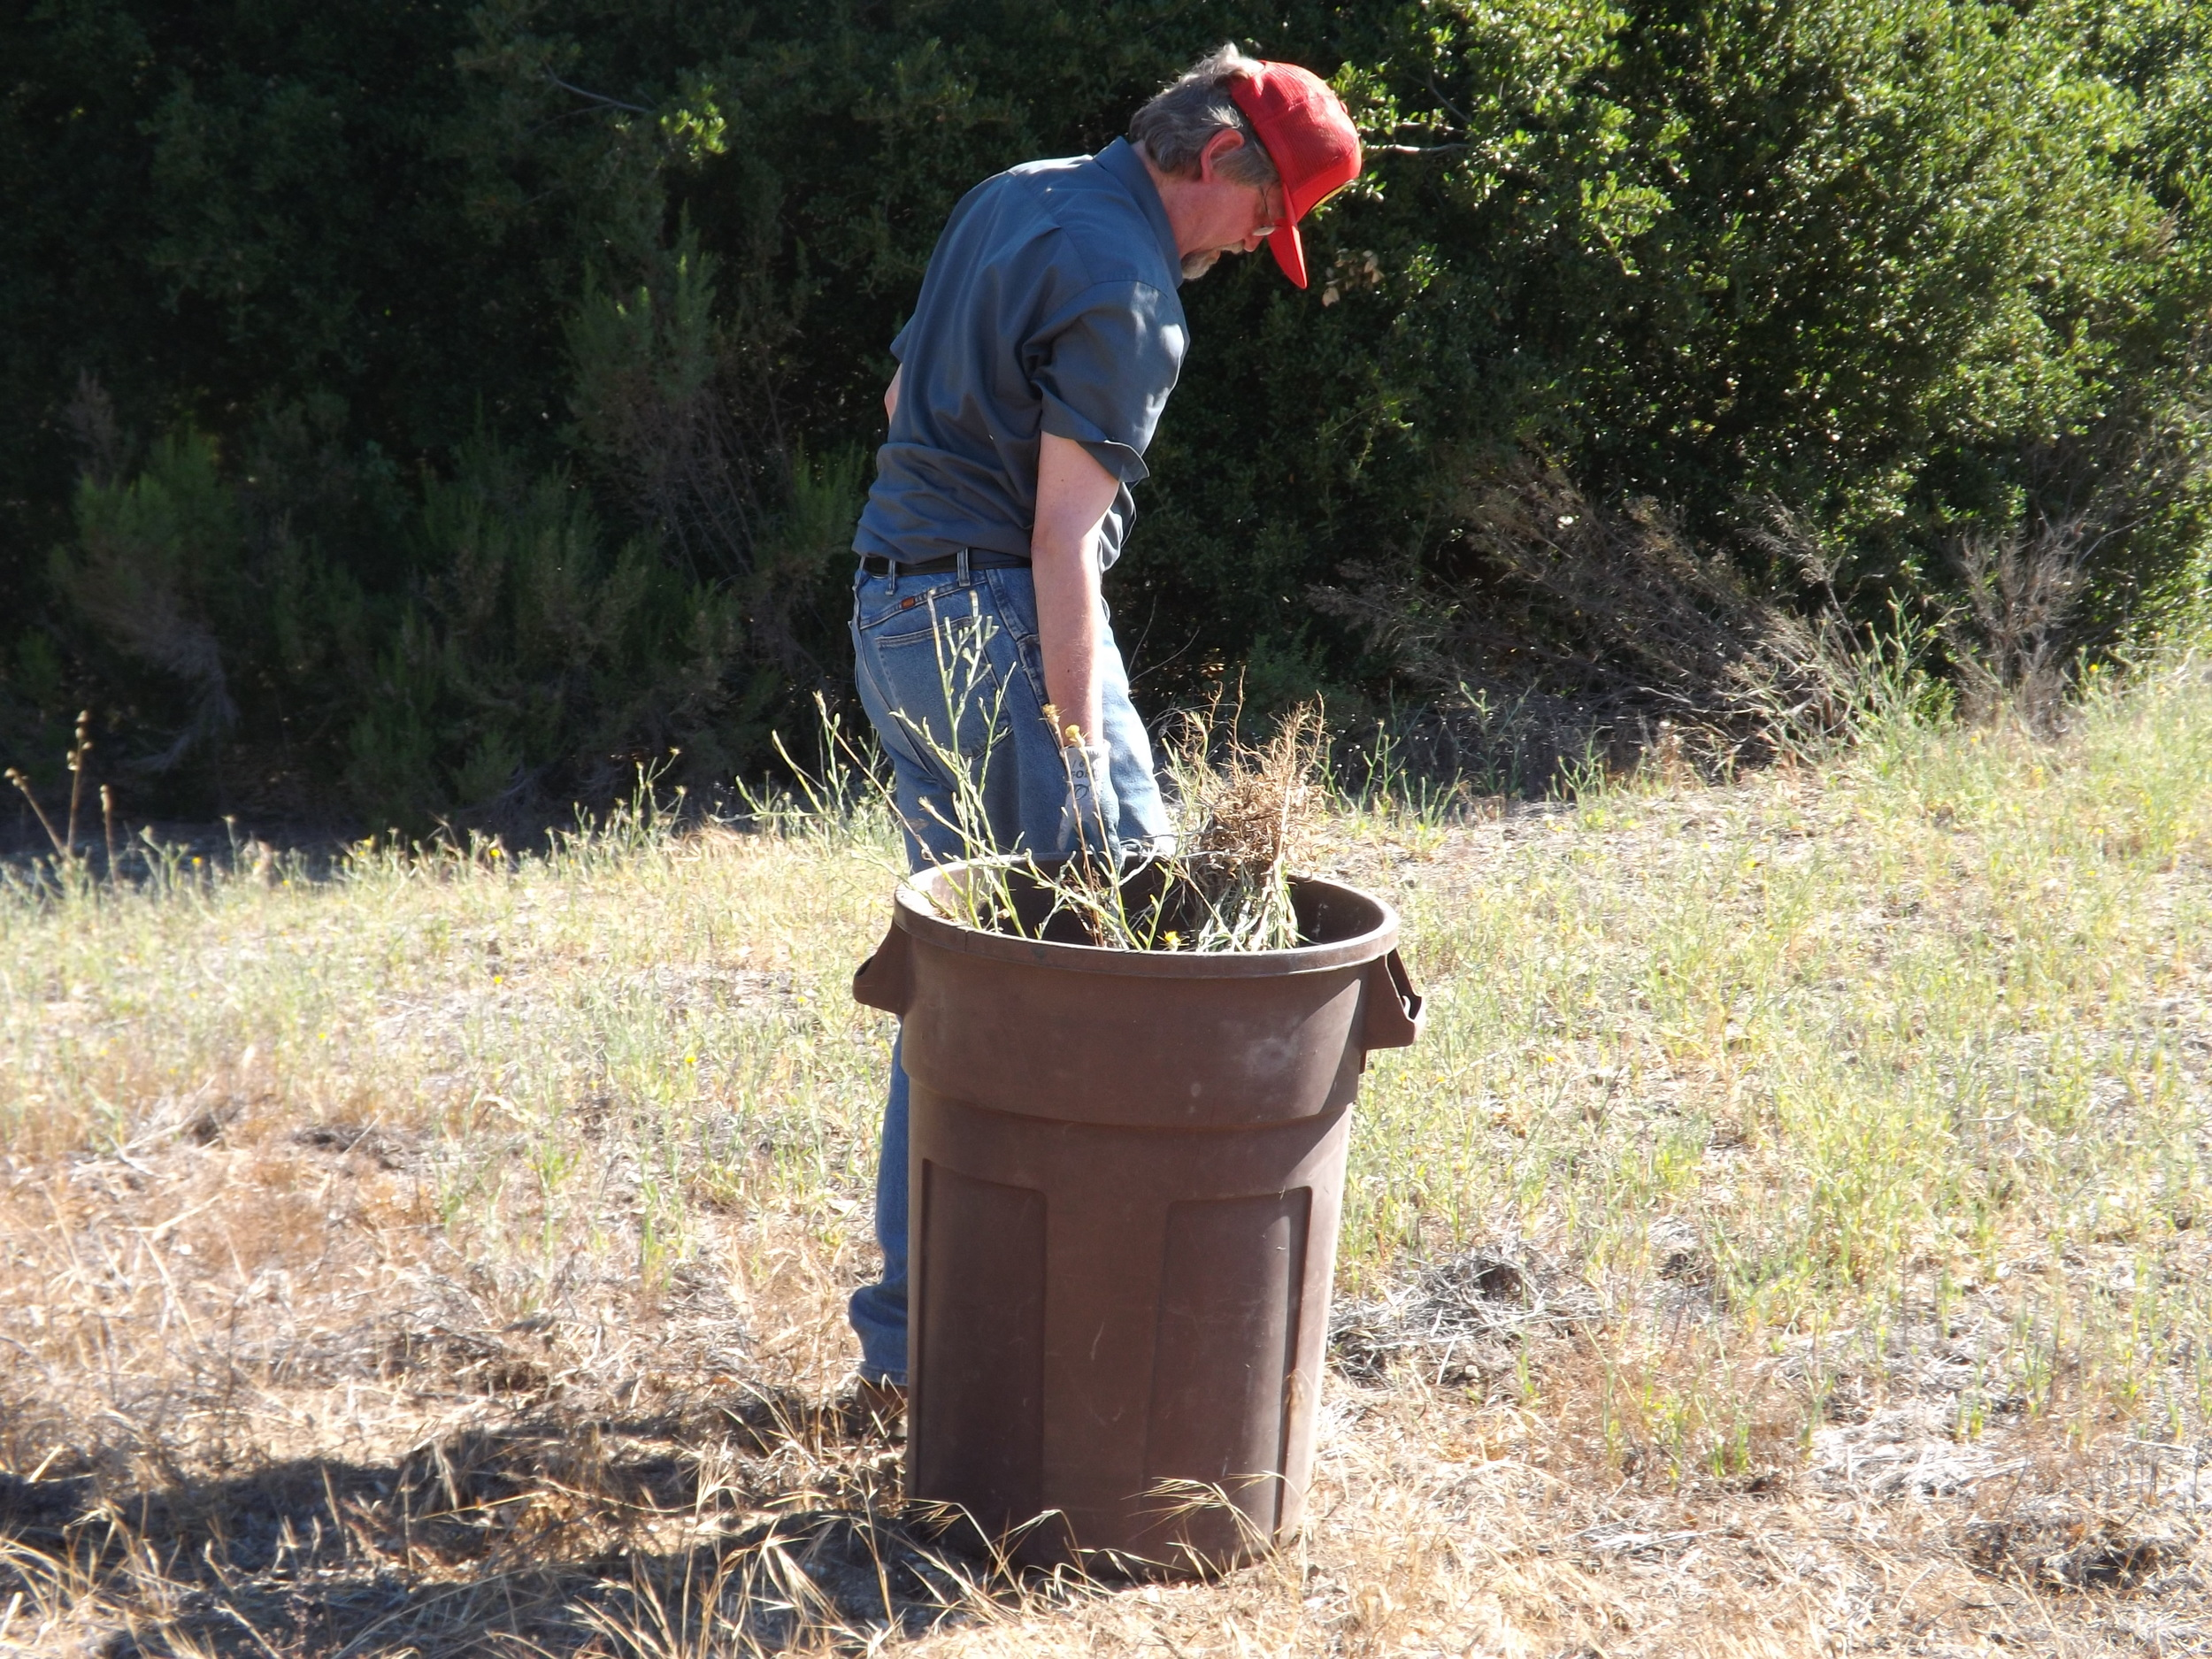 ERIC TURK has filled another barrel with Yellow Starthistle plants he removed from along the Well Road. (Photo: Leslie Bridger, 2012)